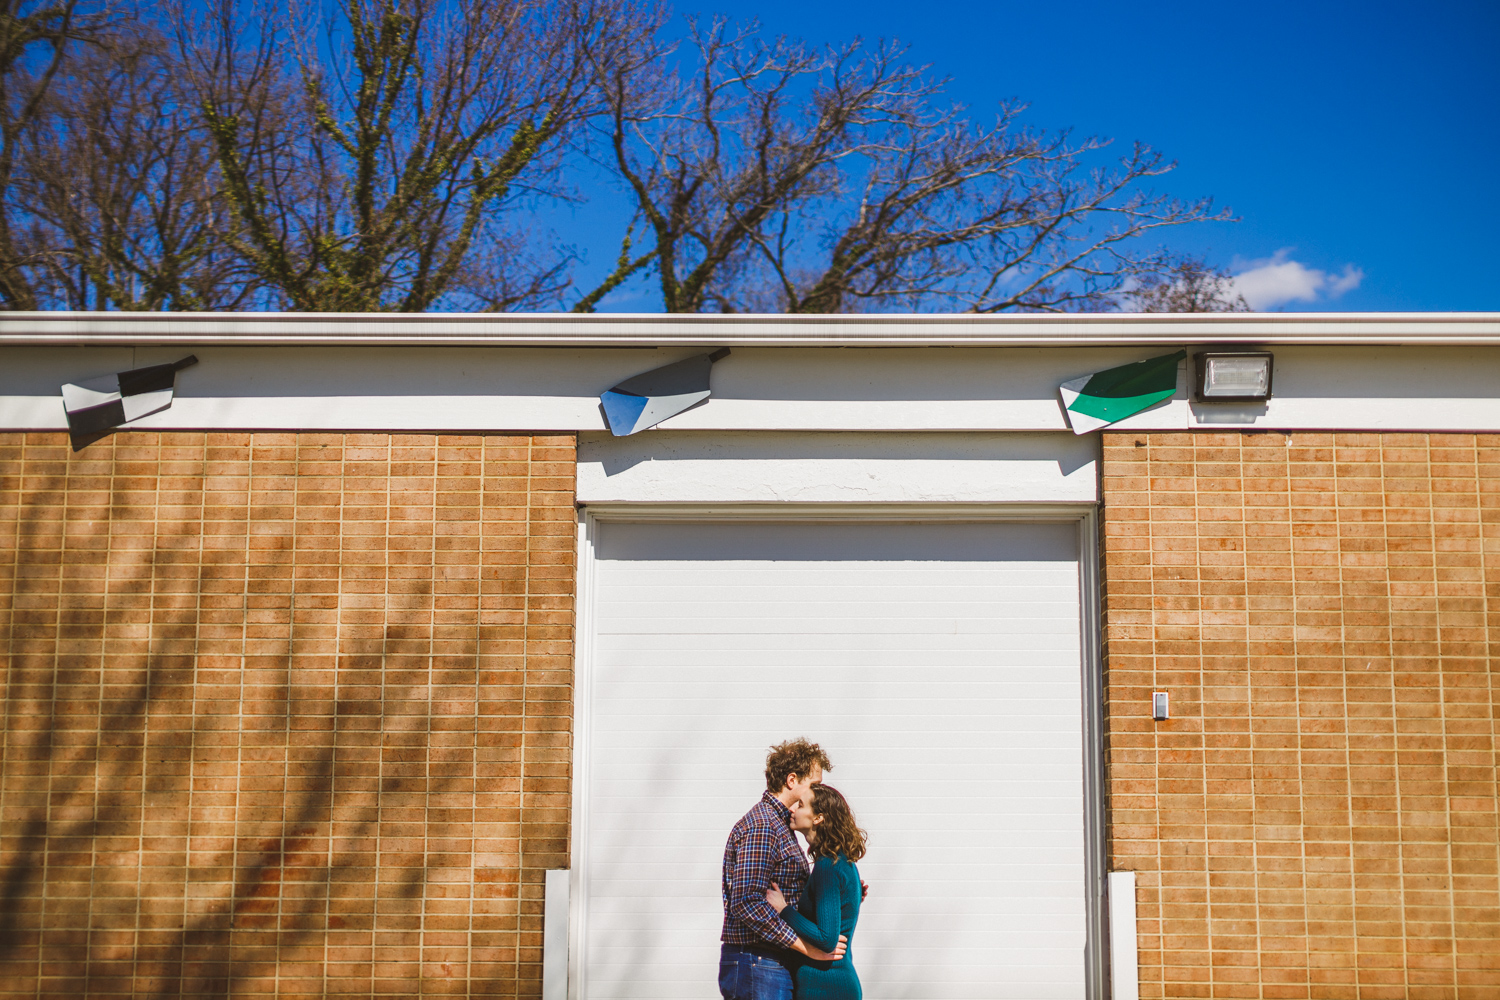 009 - couple in front of white garage door.jpg